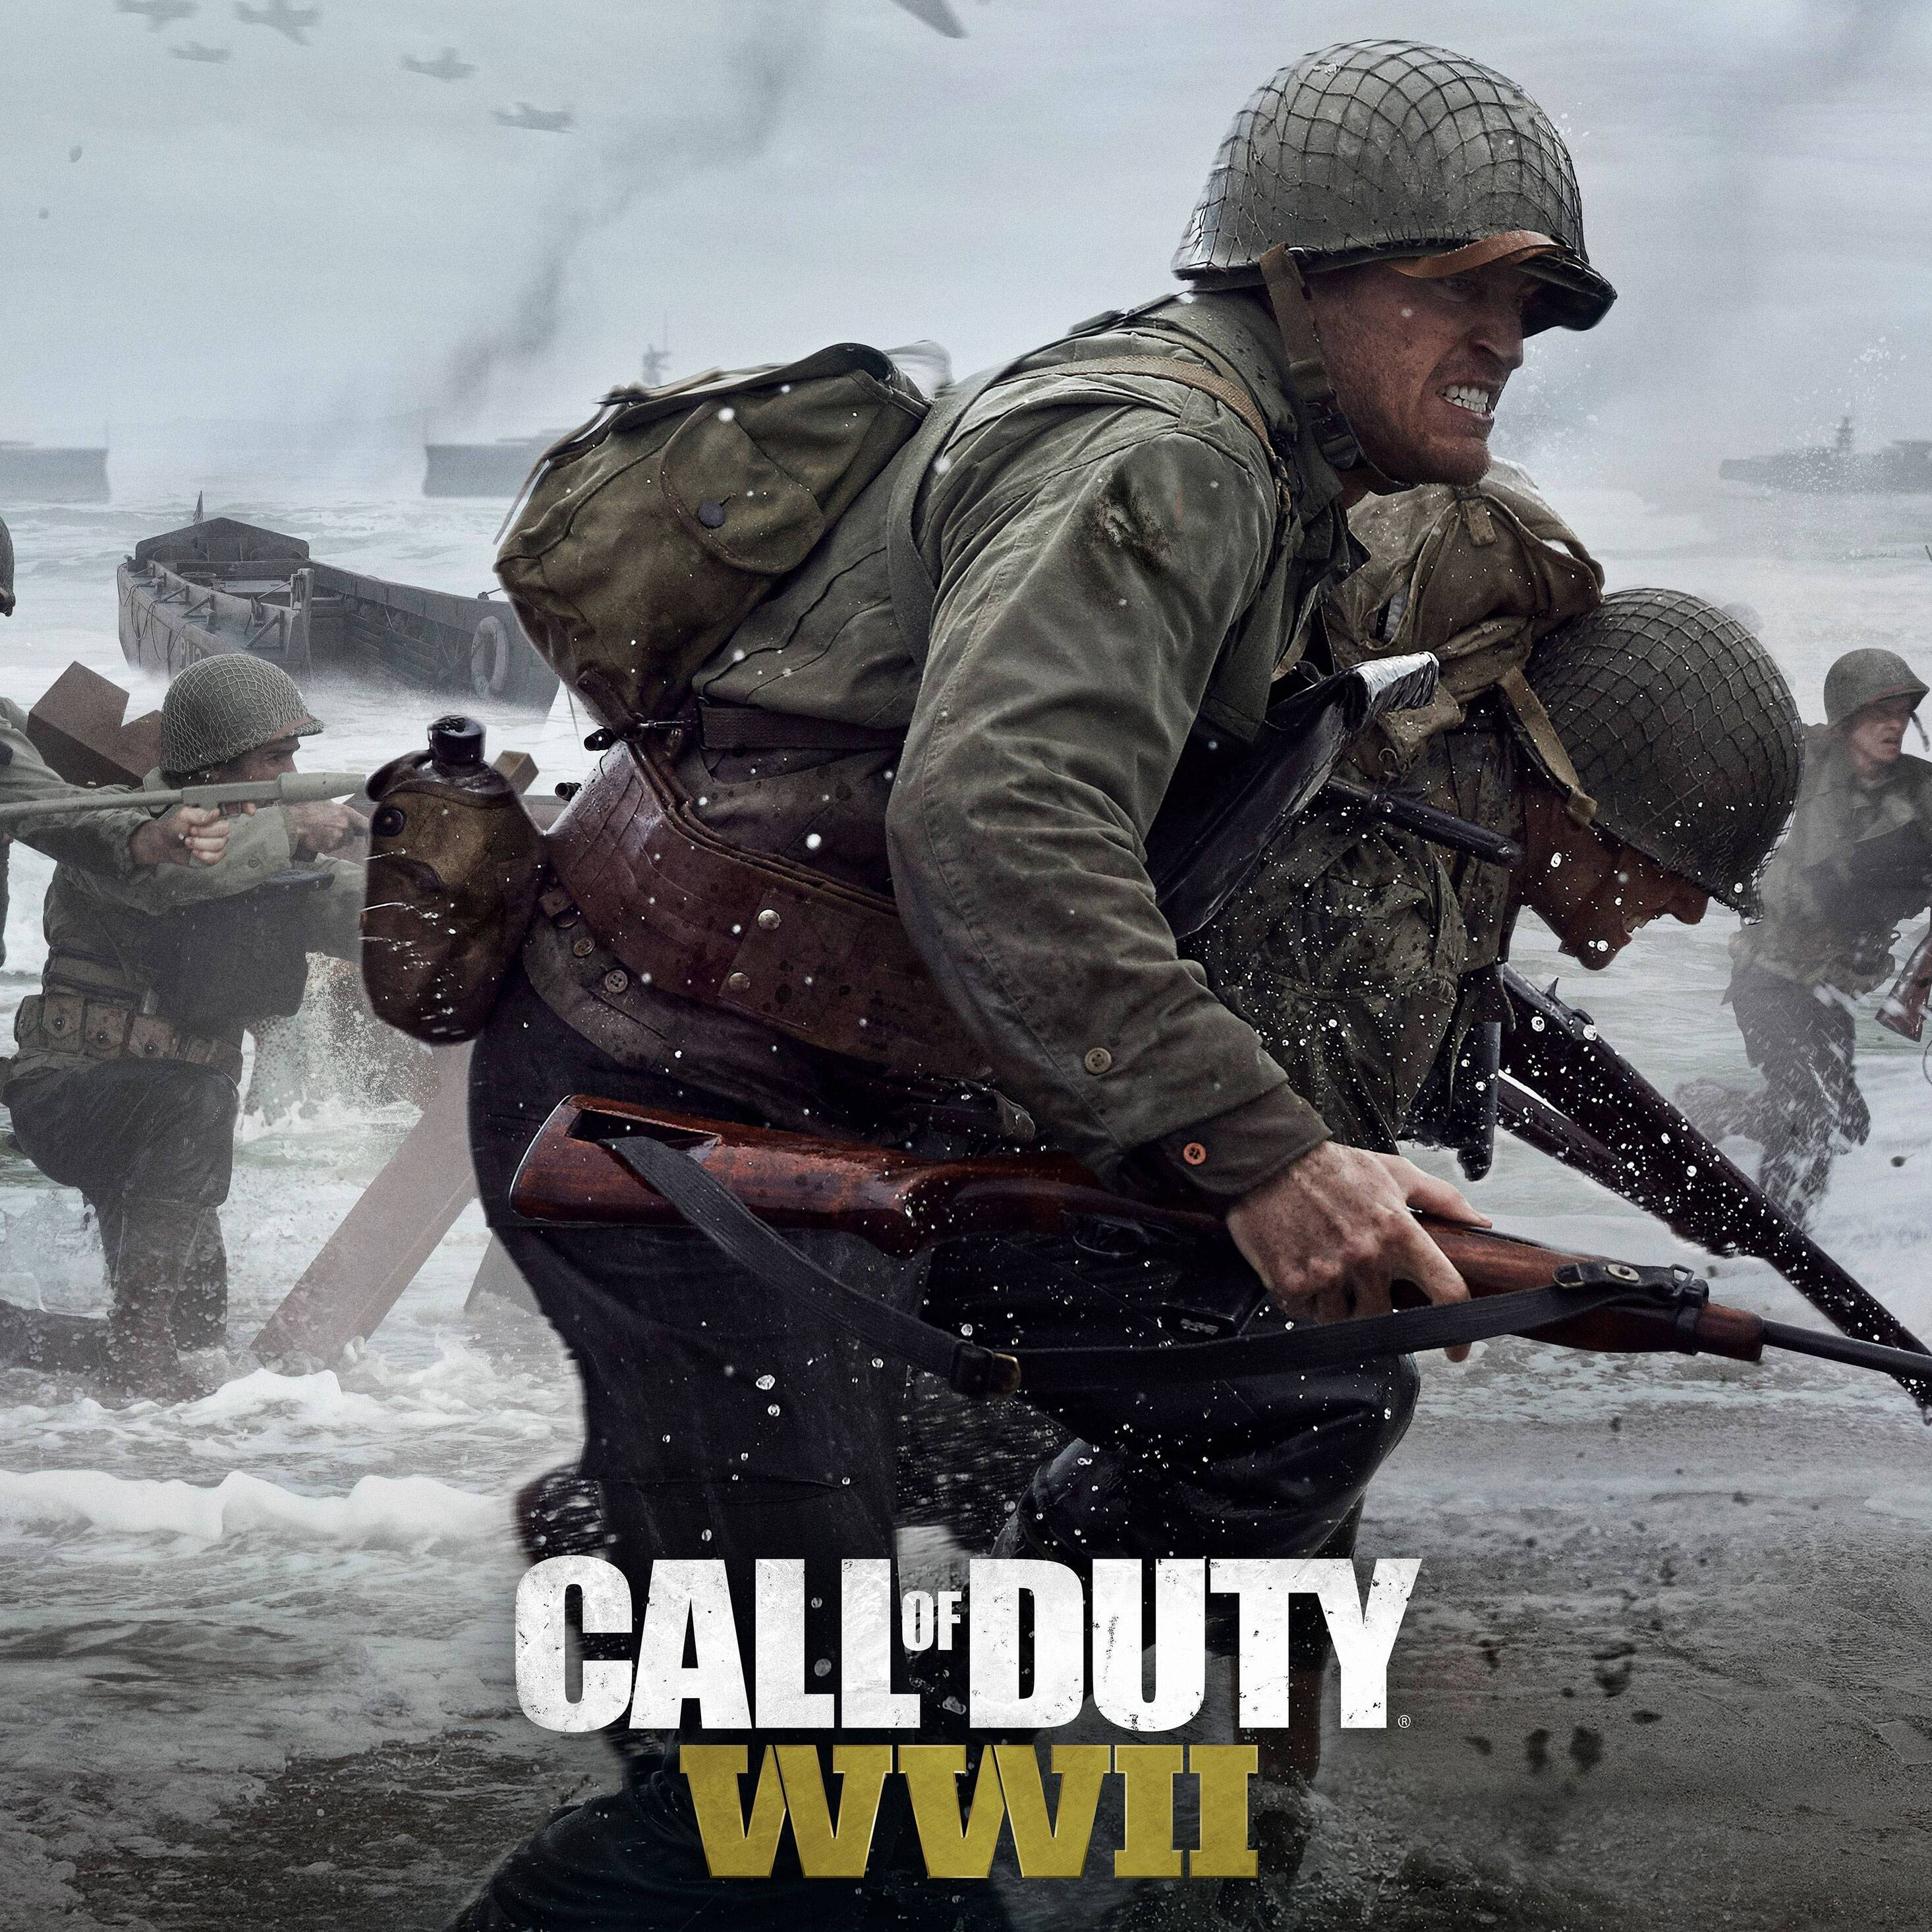 2932x2932 call of duty ww2 8k ipad pro retina display hd - Cod ww2 4k pc ...